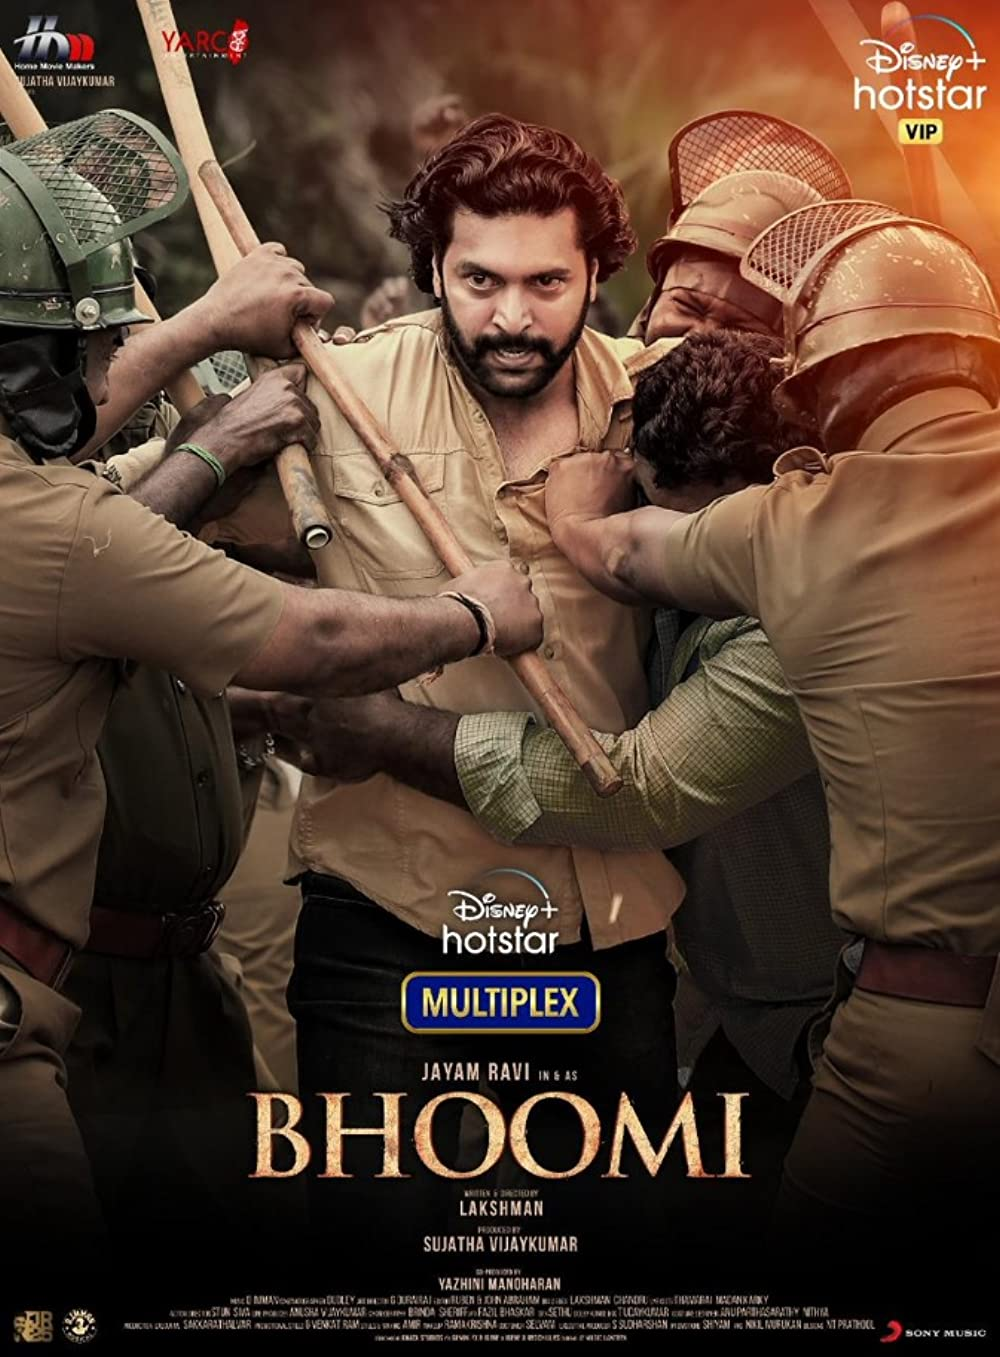 Bhoomi 2021 Multi Audio (Tamil + Telugu + Malayalam) 1080p HDRip ESub 2.1GB Download